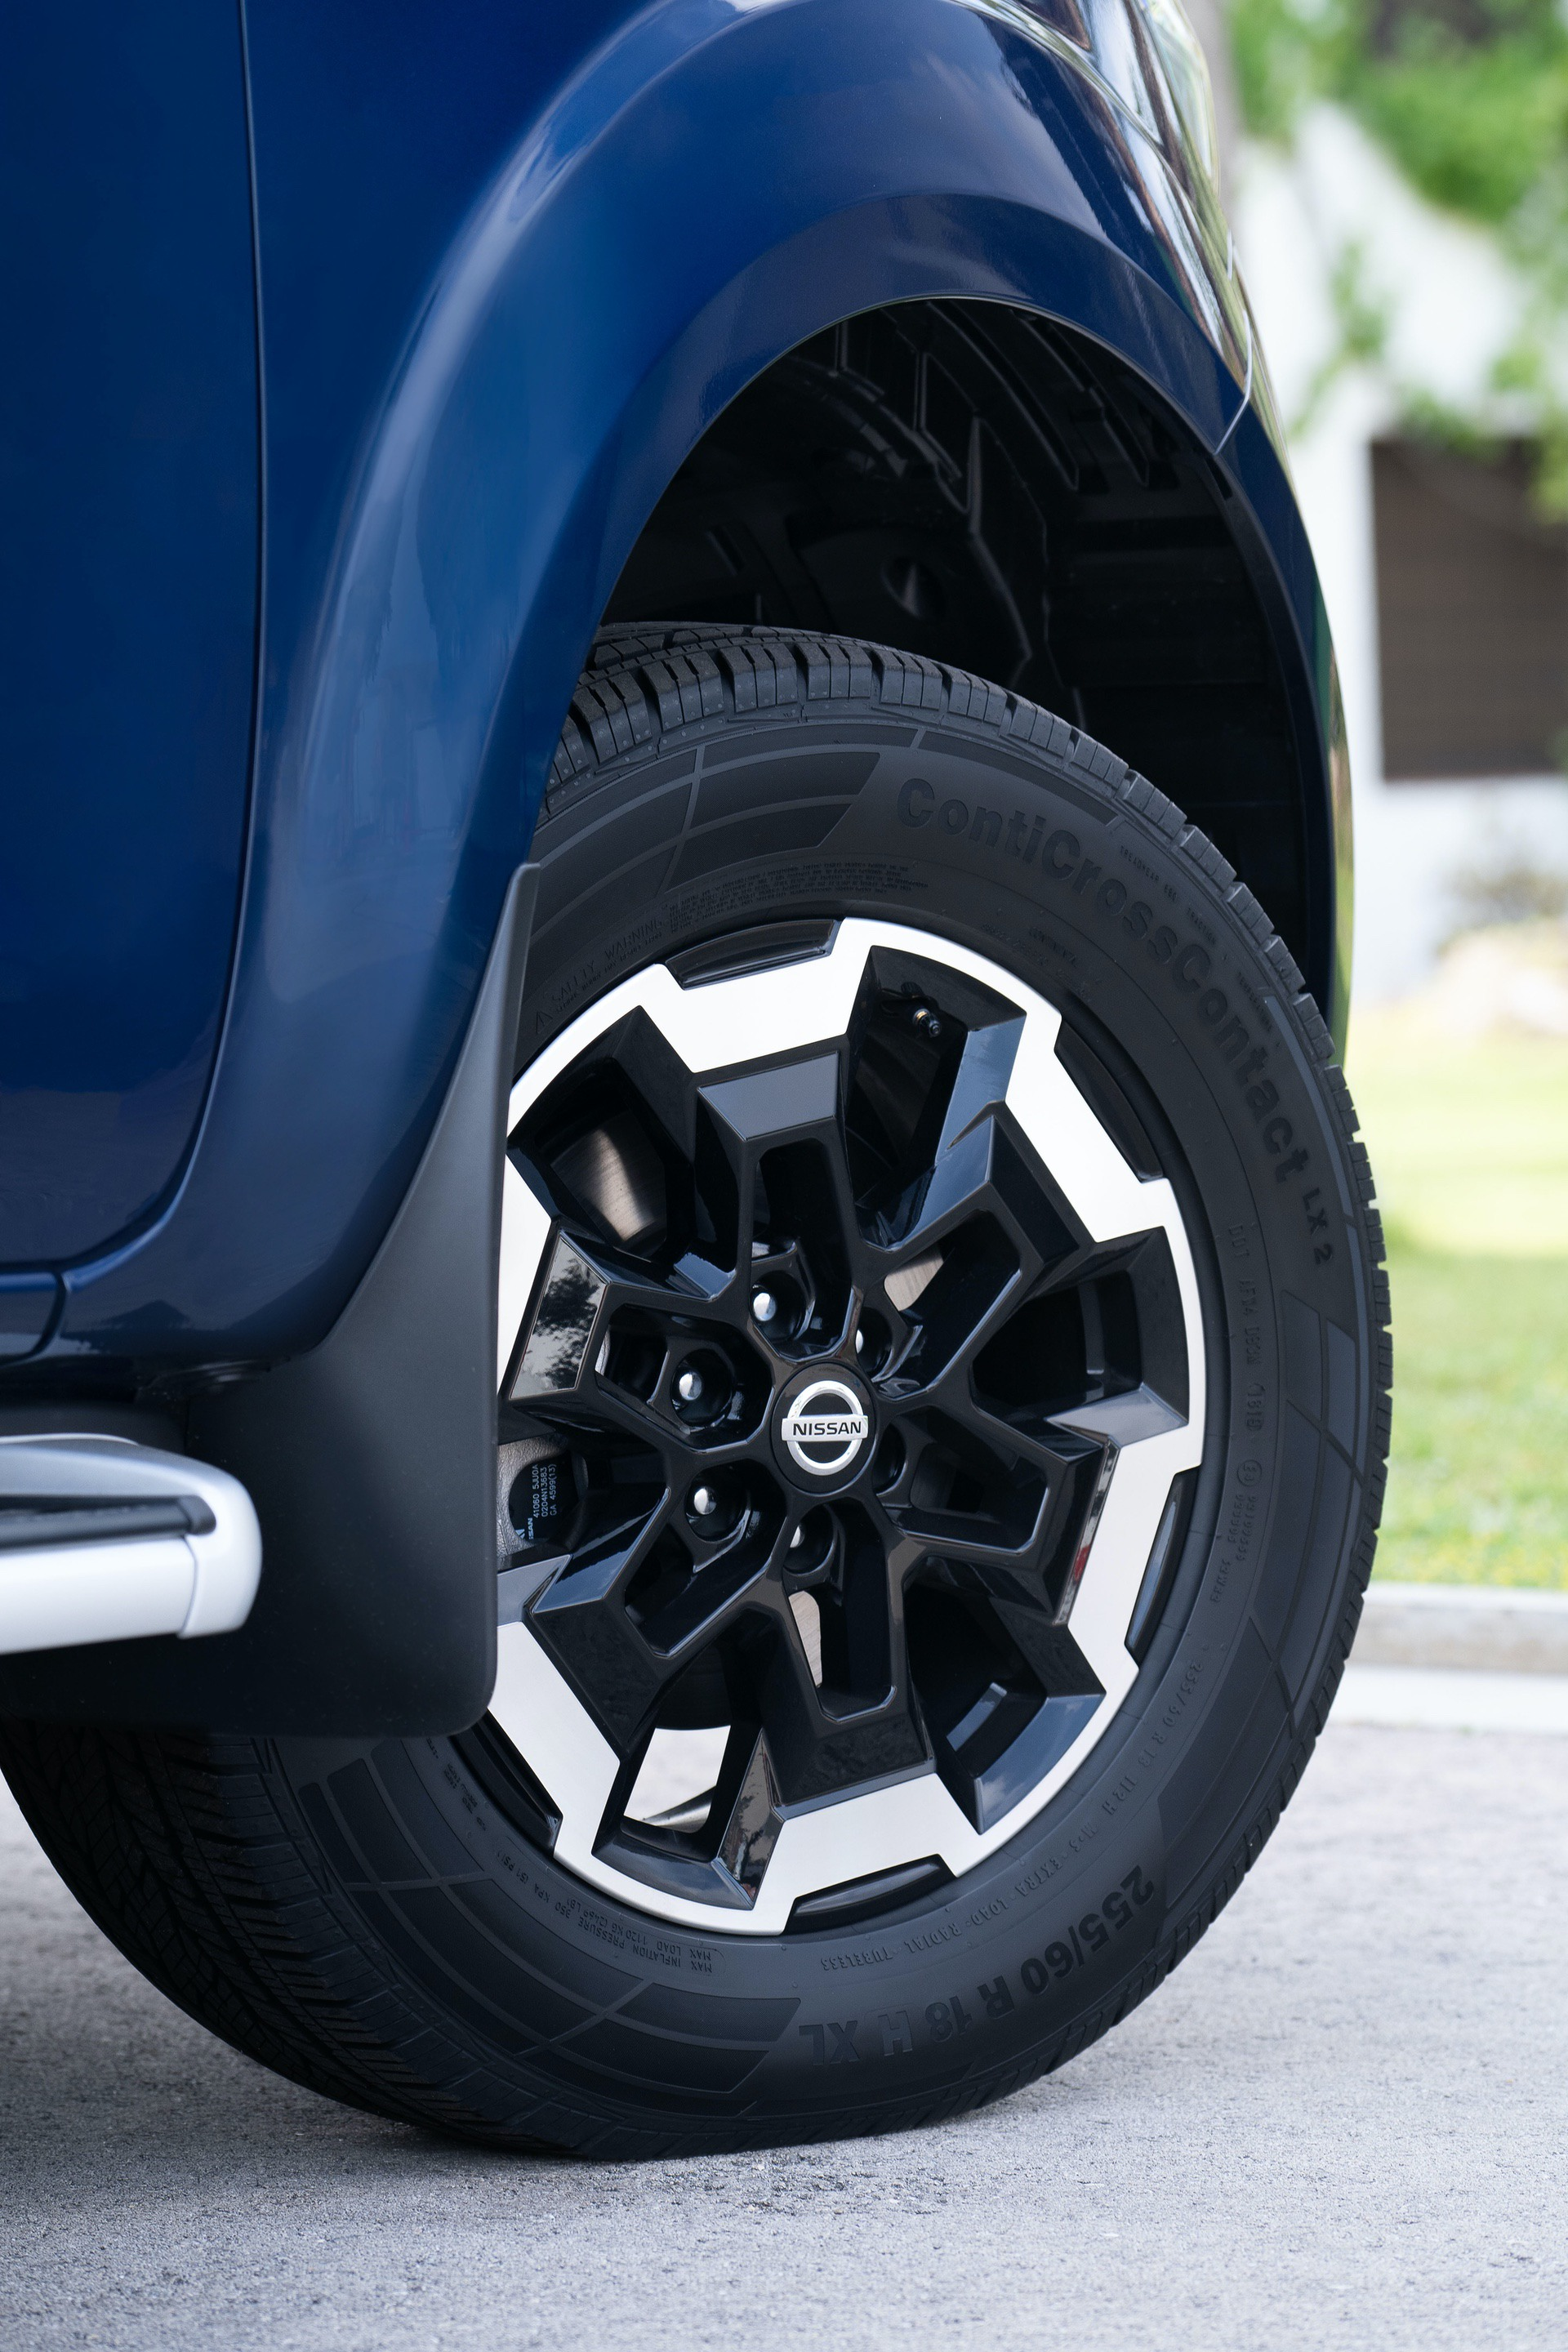 Nissan-Navara-Double-Cab-Blue-Front-wheel